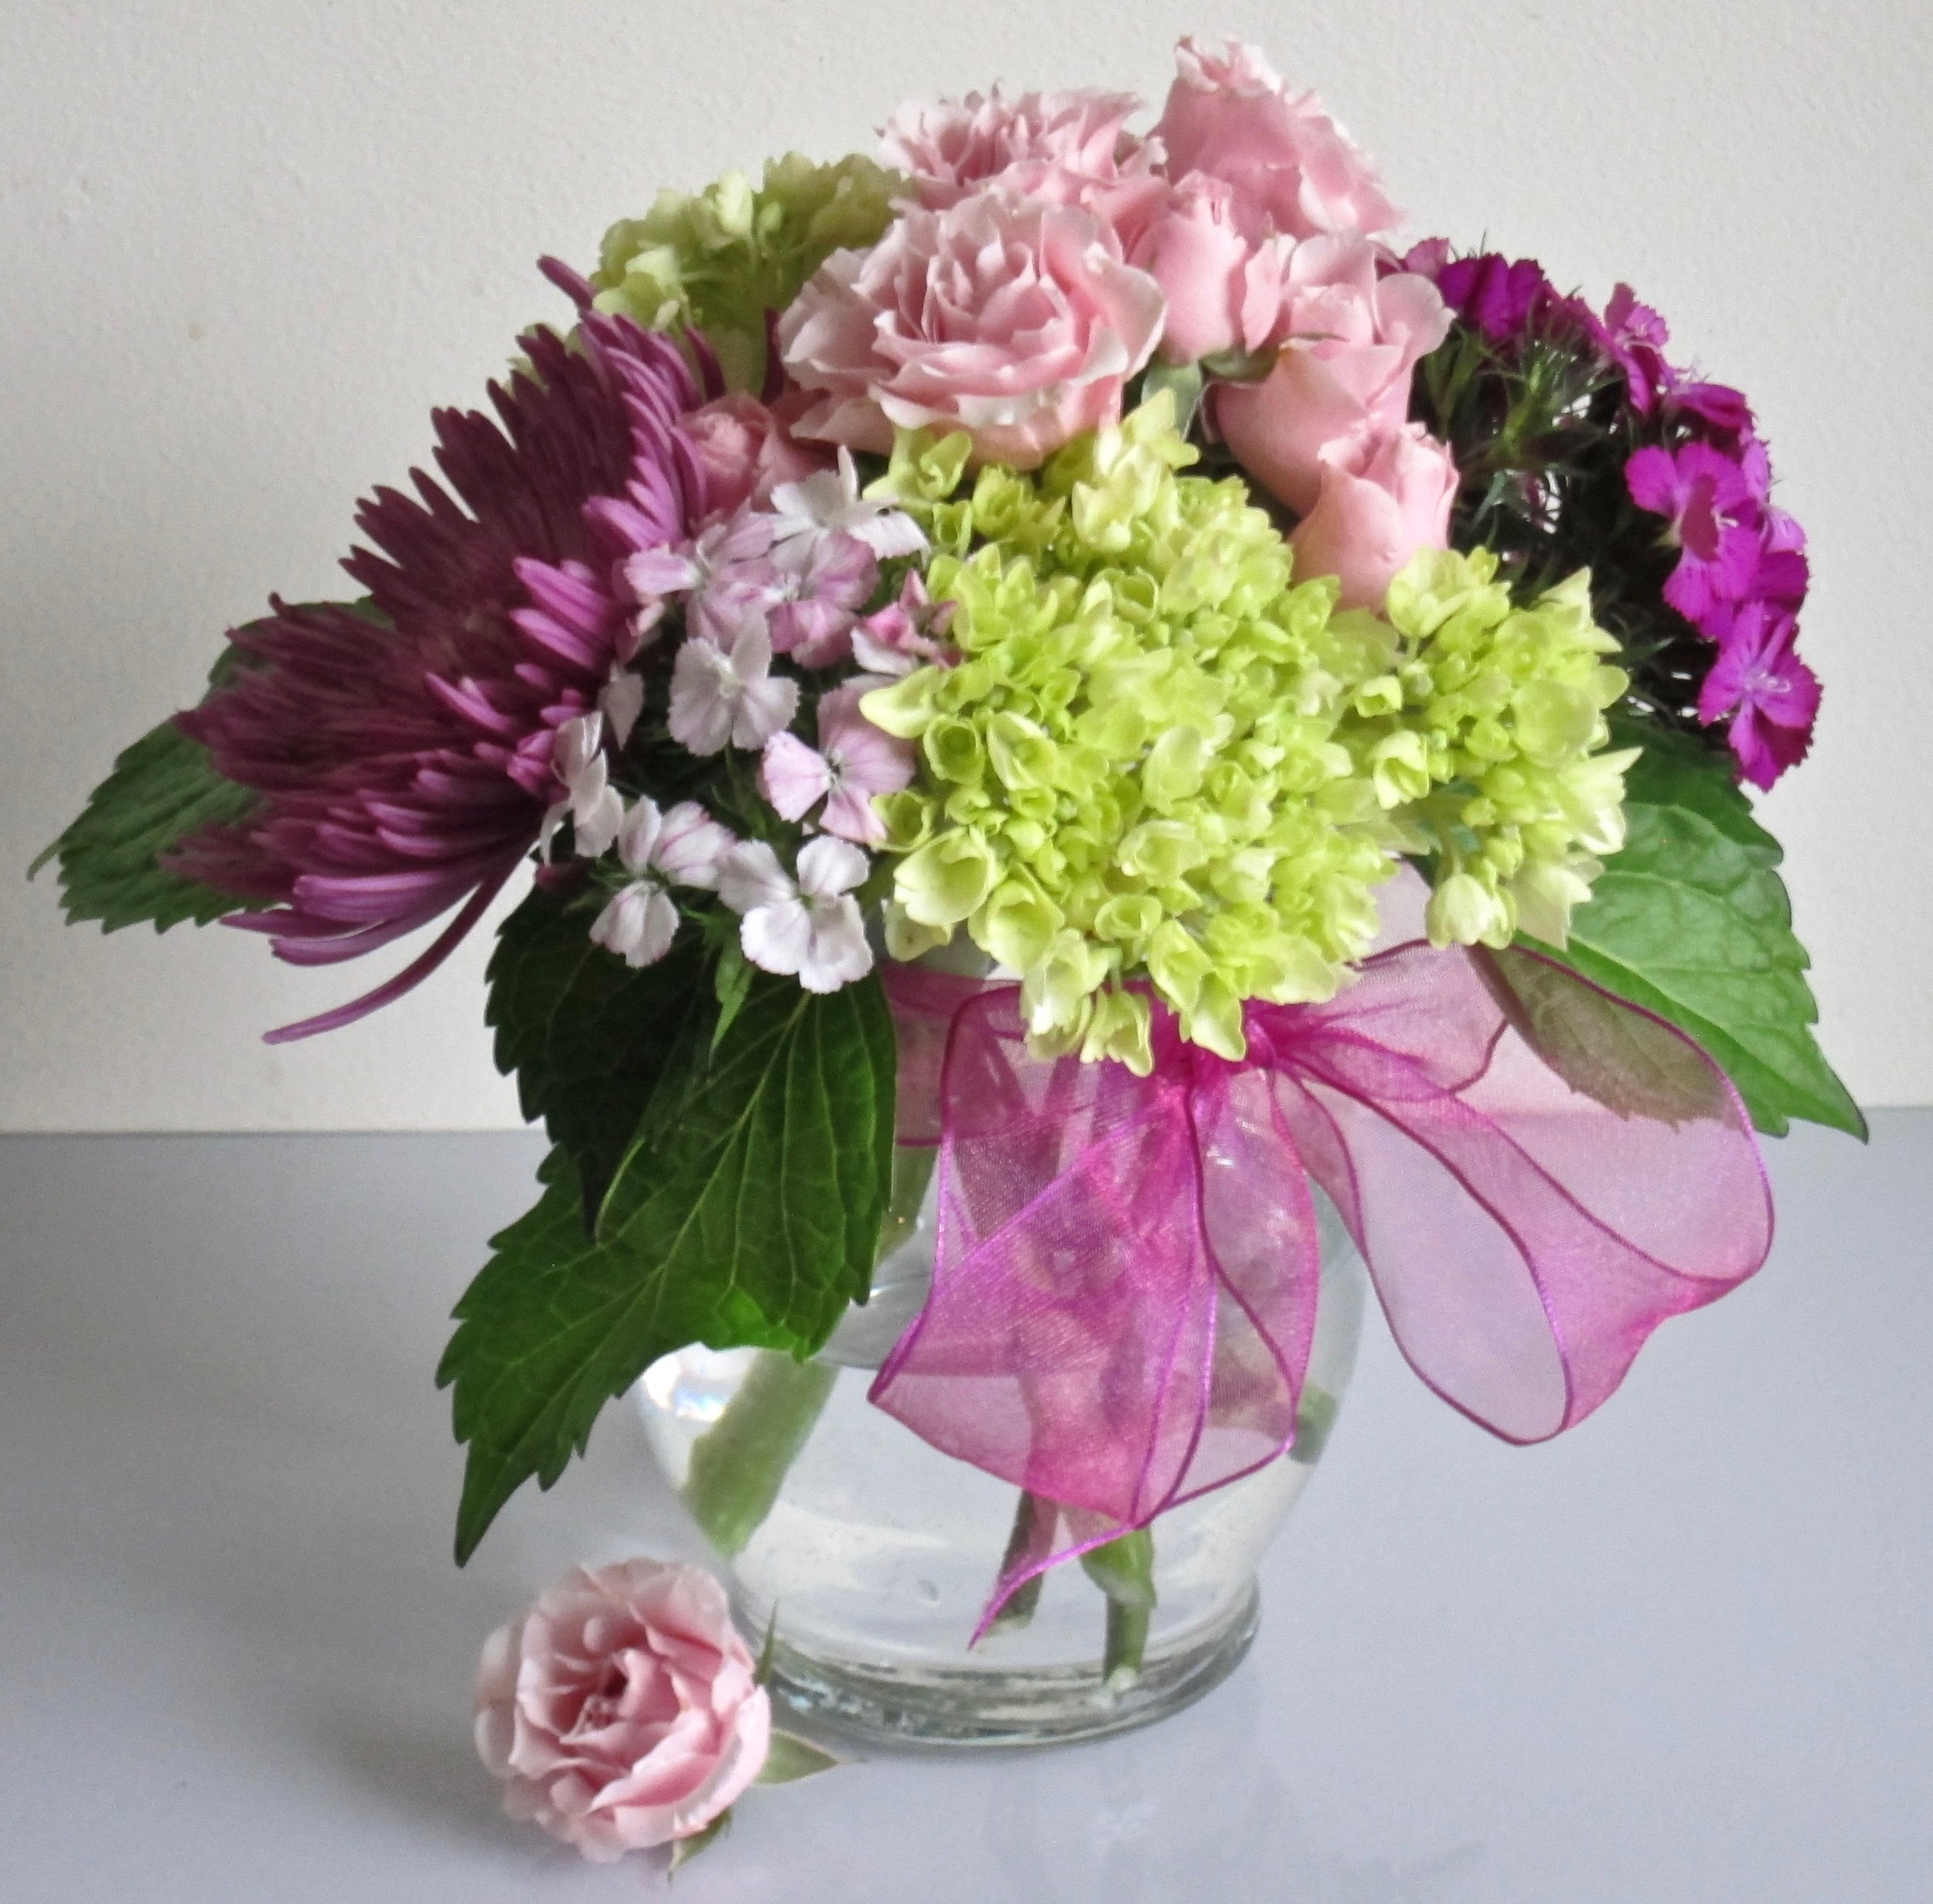 NEAT AND TIDY   A mound of seasonal flowers in a low ginger vase, $40. Cremons, dianthus, mini hydrangea, roses.